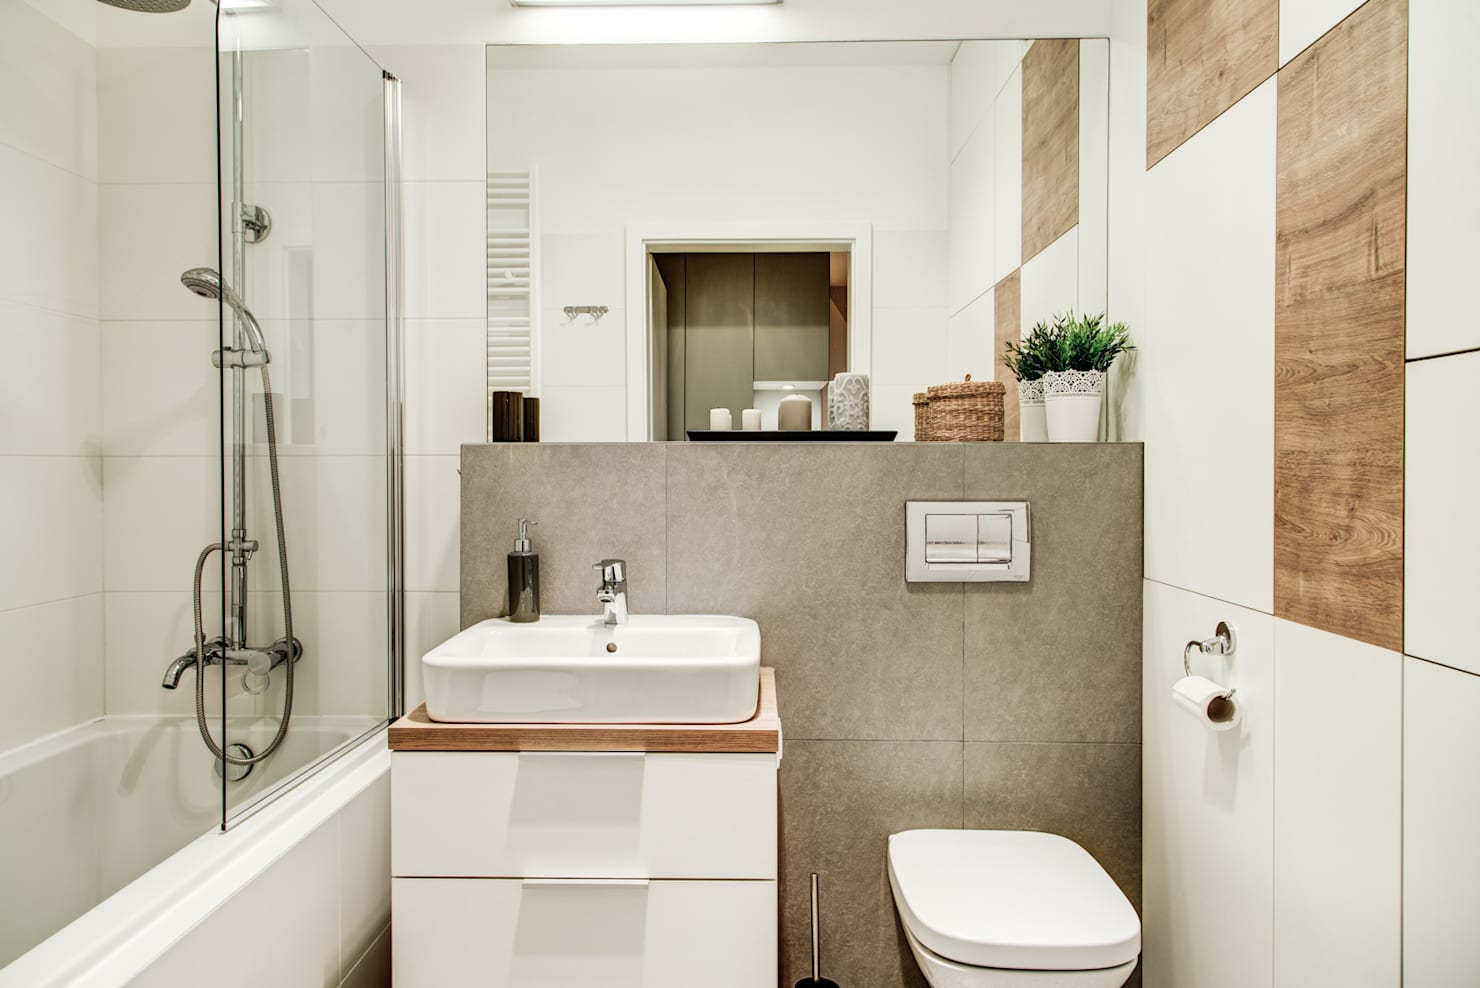 Top 5: from bathrooms that will wow you to patio decor ideas!